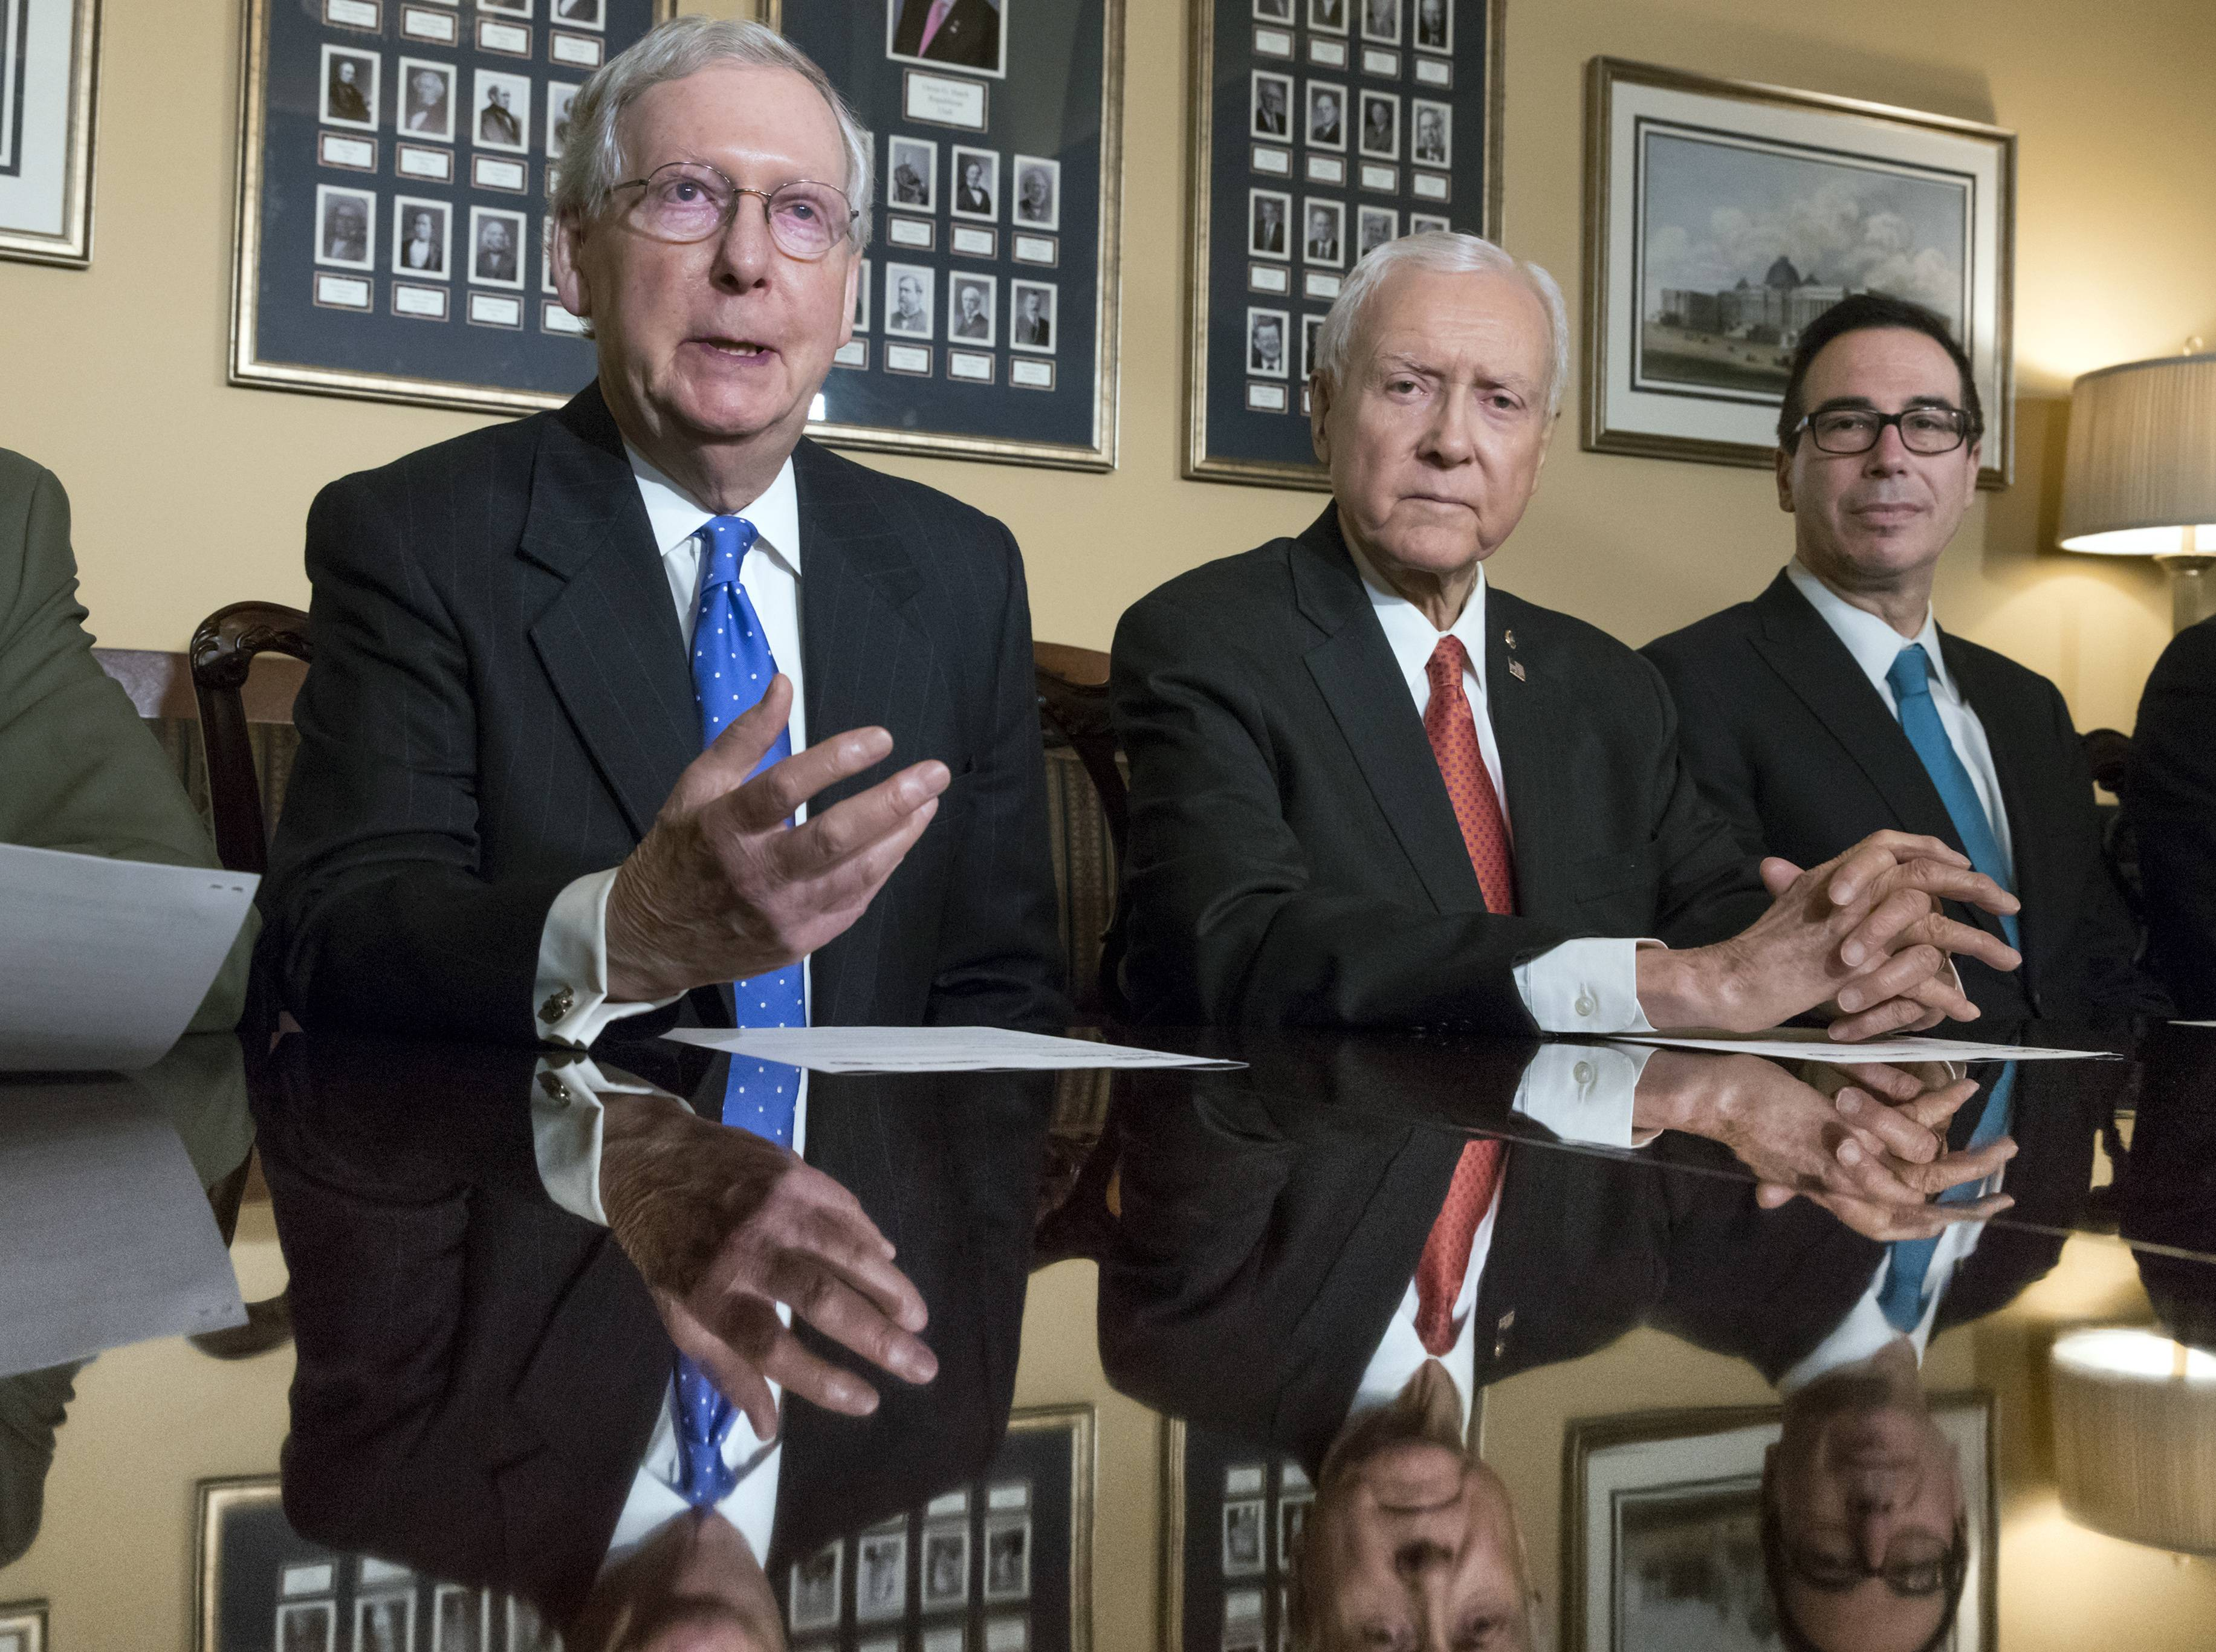 Senate Majority Leader Mitch McConnell, Kentucky, Senate Finance Committee Chairman Orrin Hatch, a Utah Republican, and Treasury Secretary Steven Mnuchin, speak to reporters as work gets underway on the Senate's version of the GOP tax reform bill.